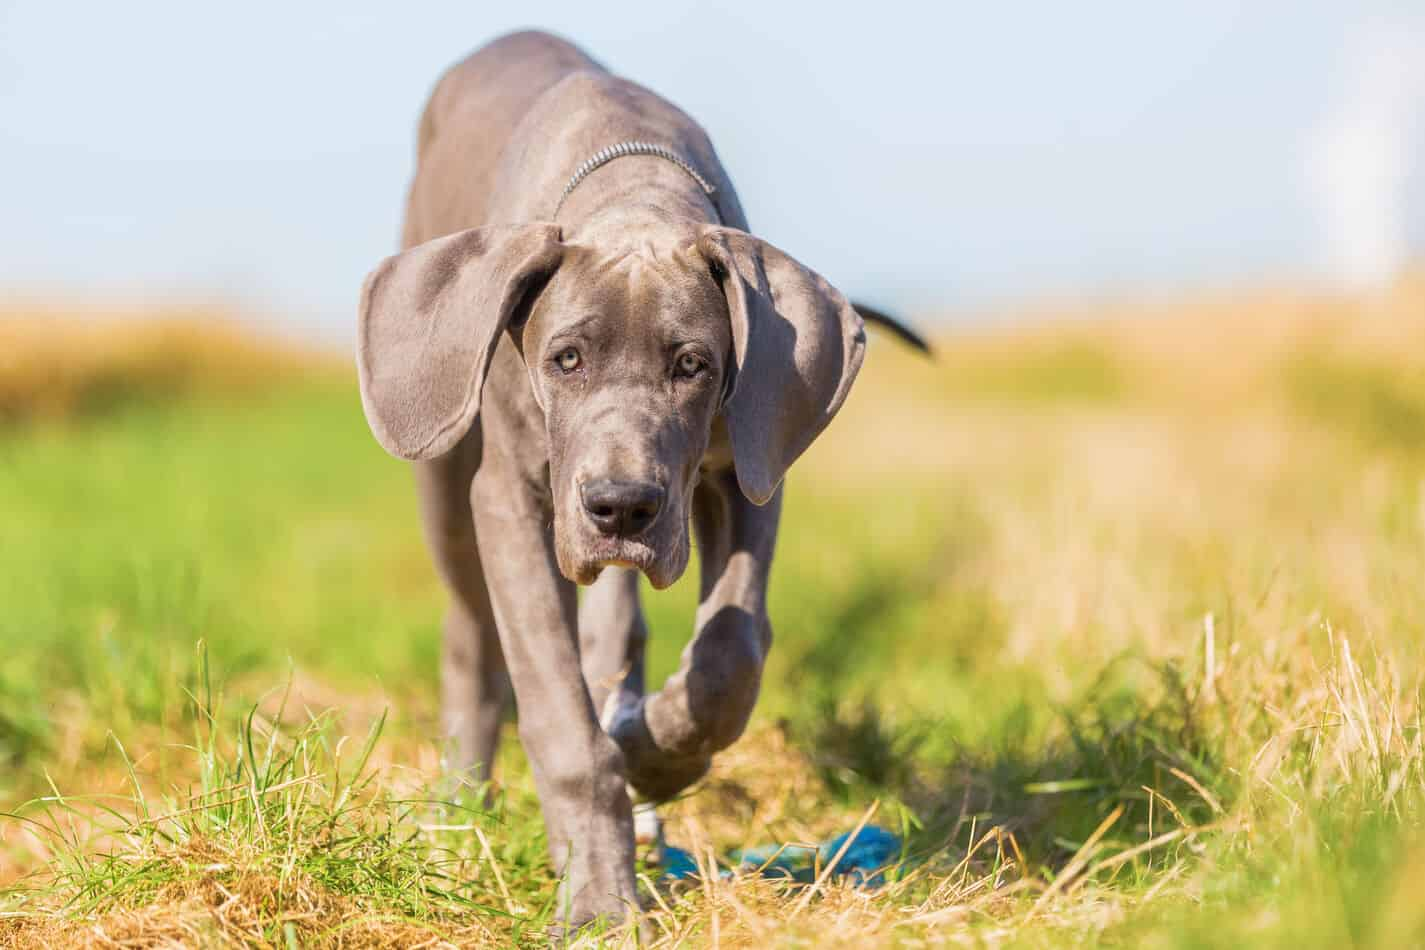 What are Great Danes Bred For?